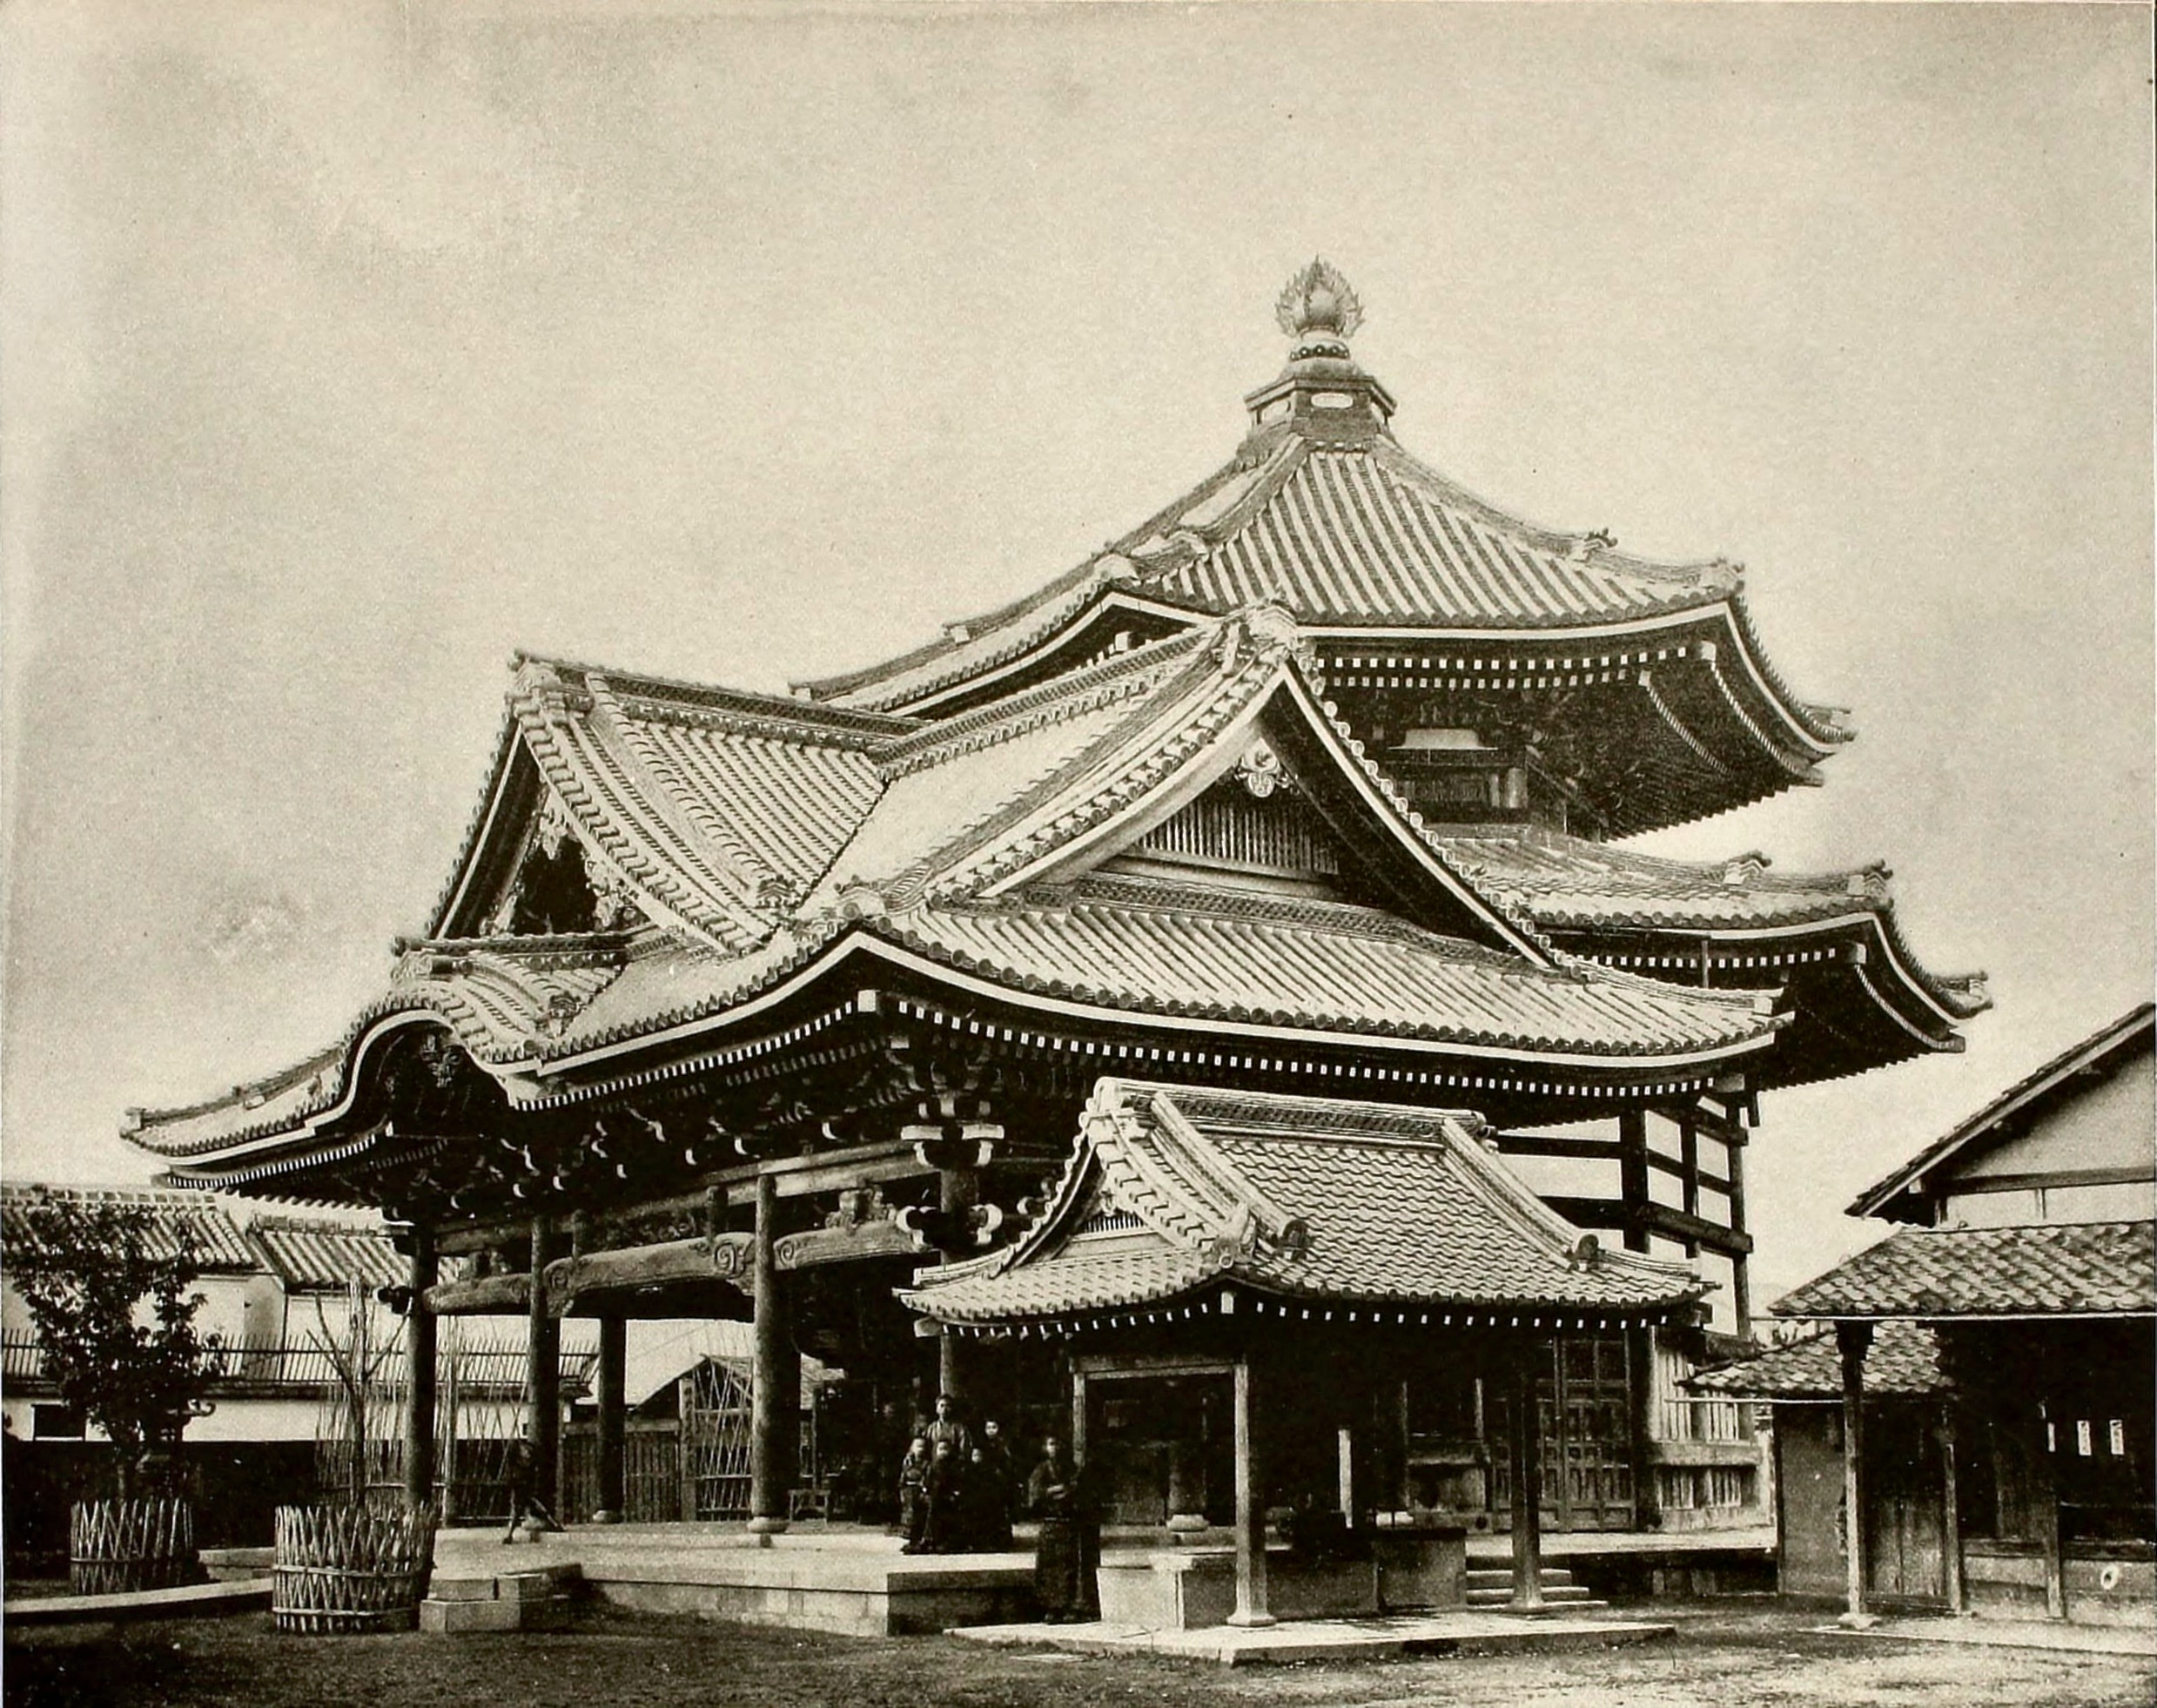 Hectagonal Temple in Kyoto Japan about 1892